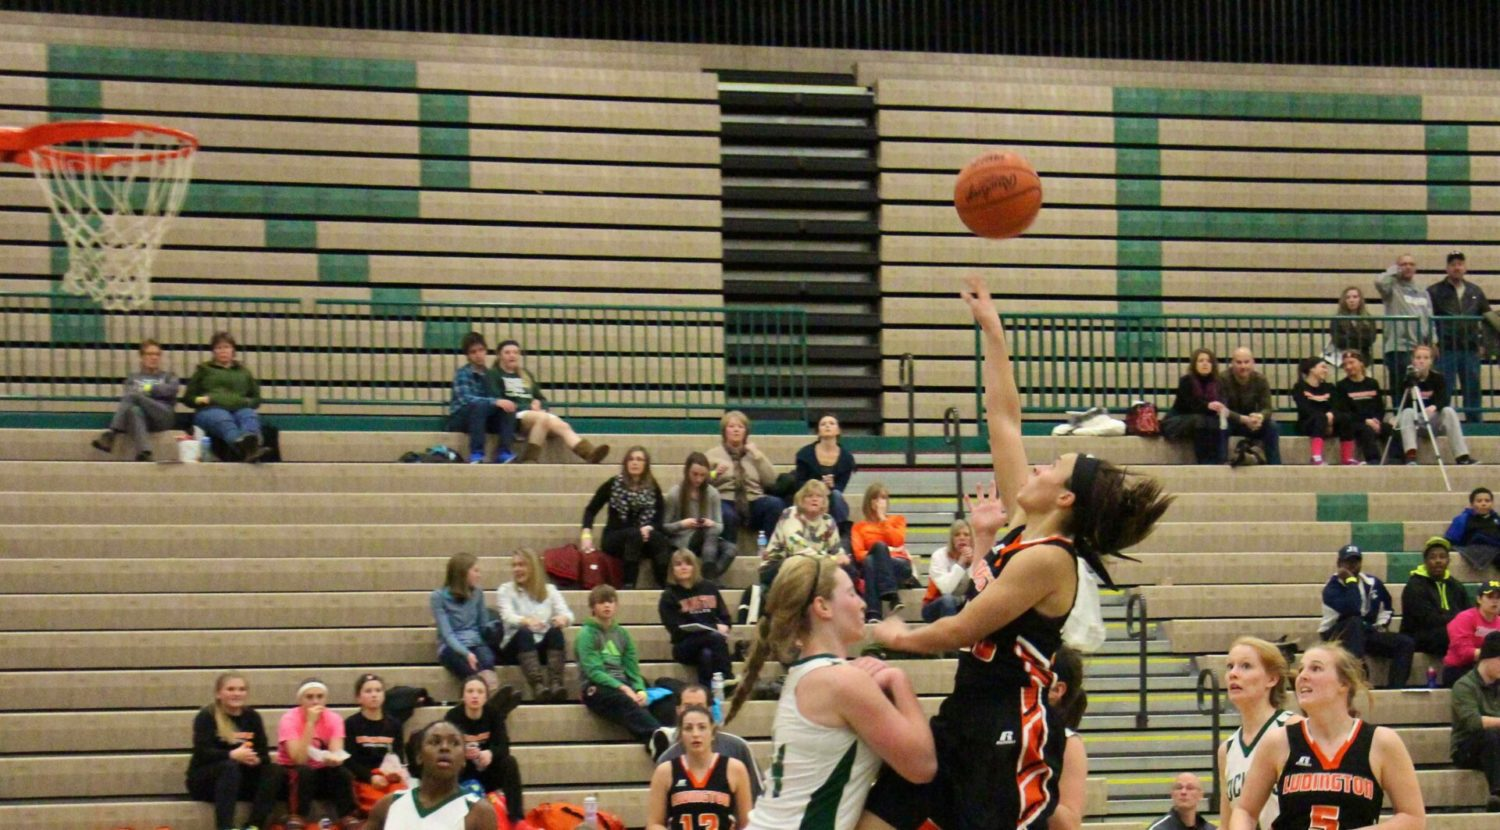 Wahr hits a dramatic 3-pointer at the buzzer to give Ludington girls a 42-39 win over Reeths-Puffer [VIDEO]